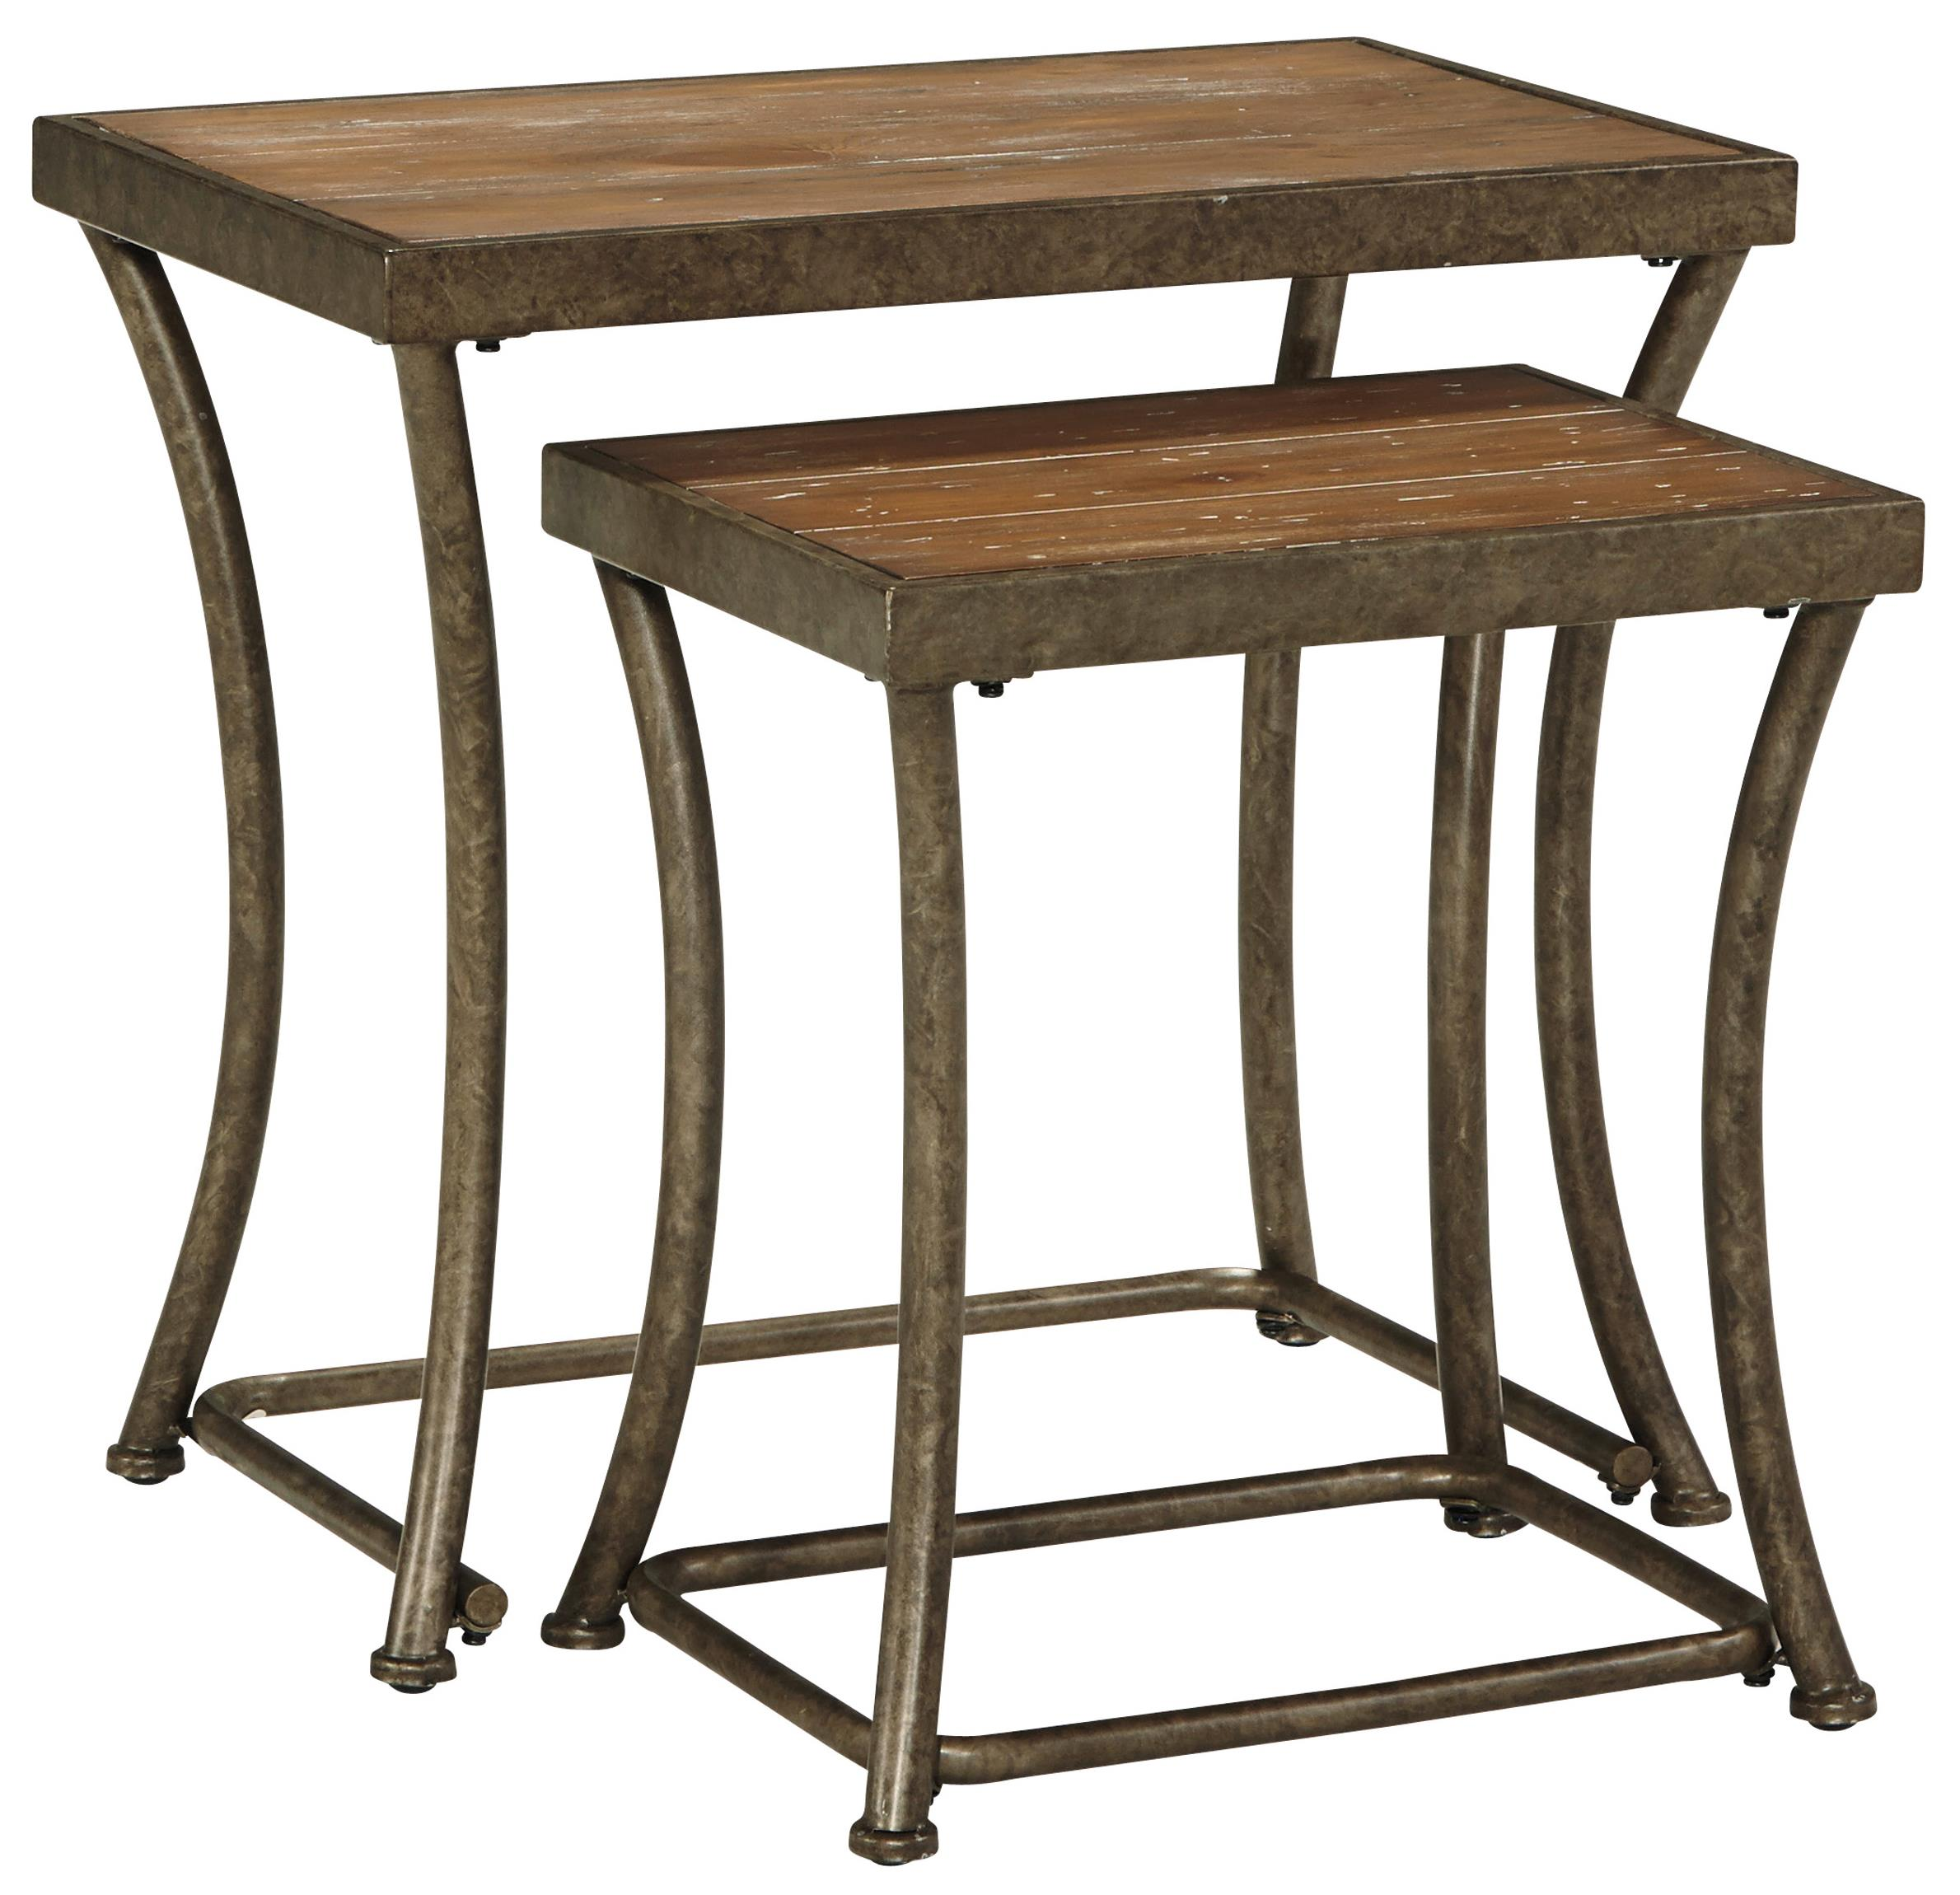 Signature Design by Ashley Nartina Nesting End Tables - Item Number: T805-16